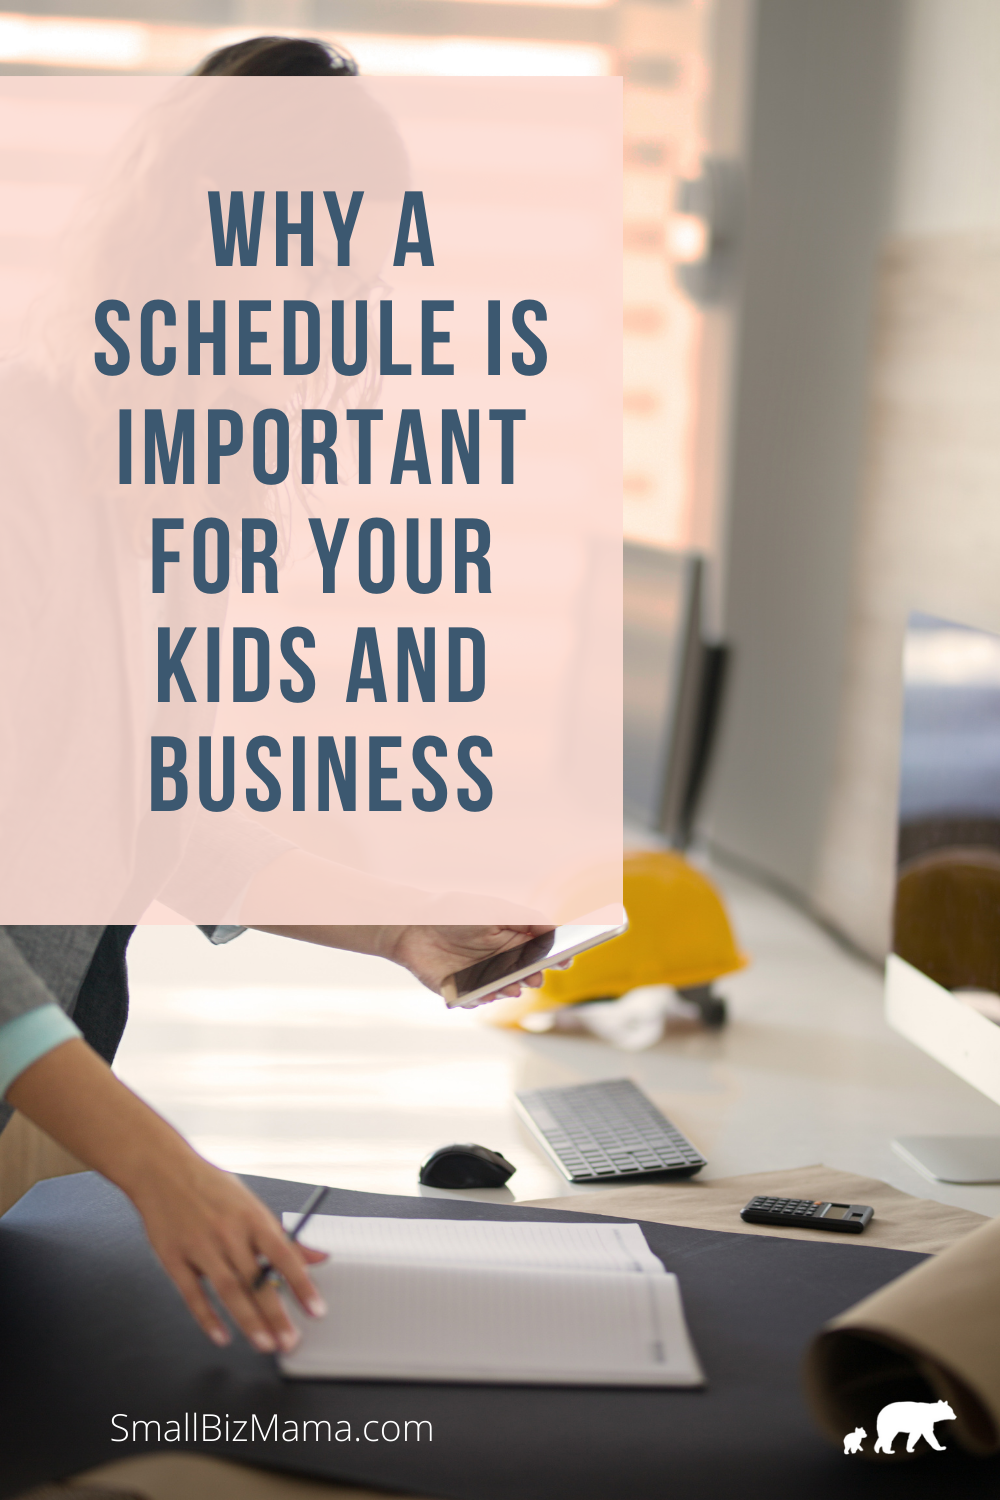 Why a schedule is important for your kids and business